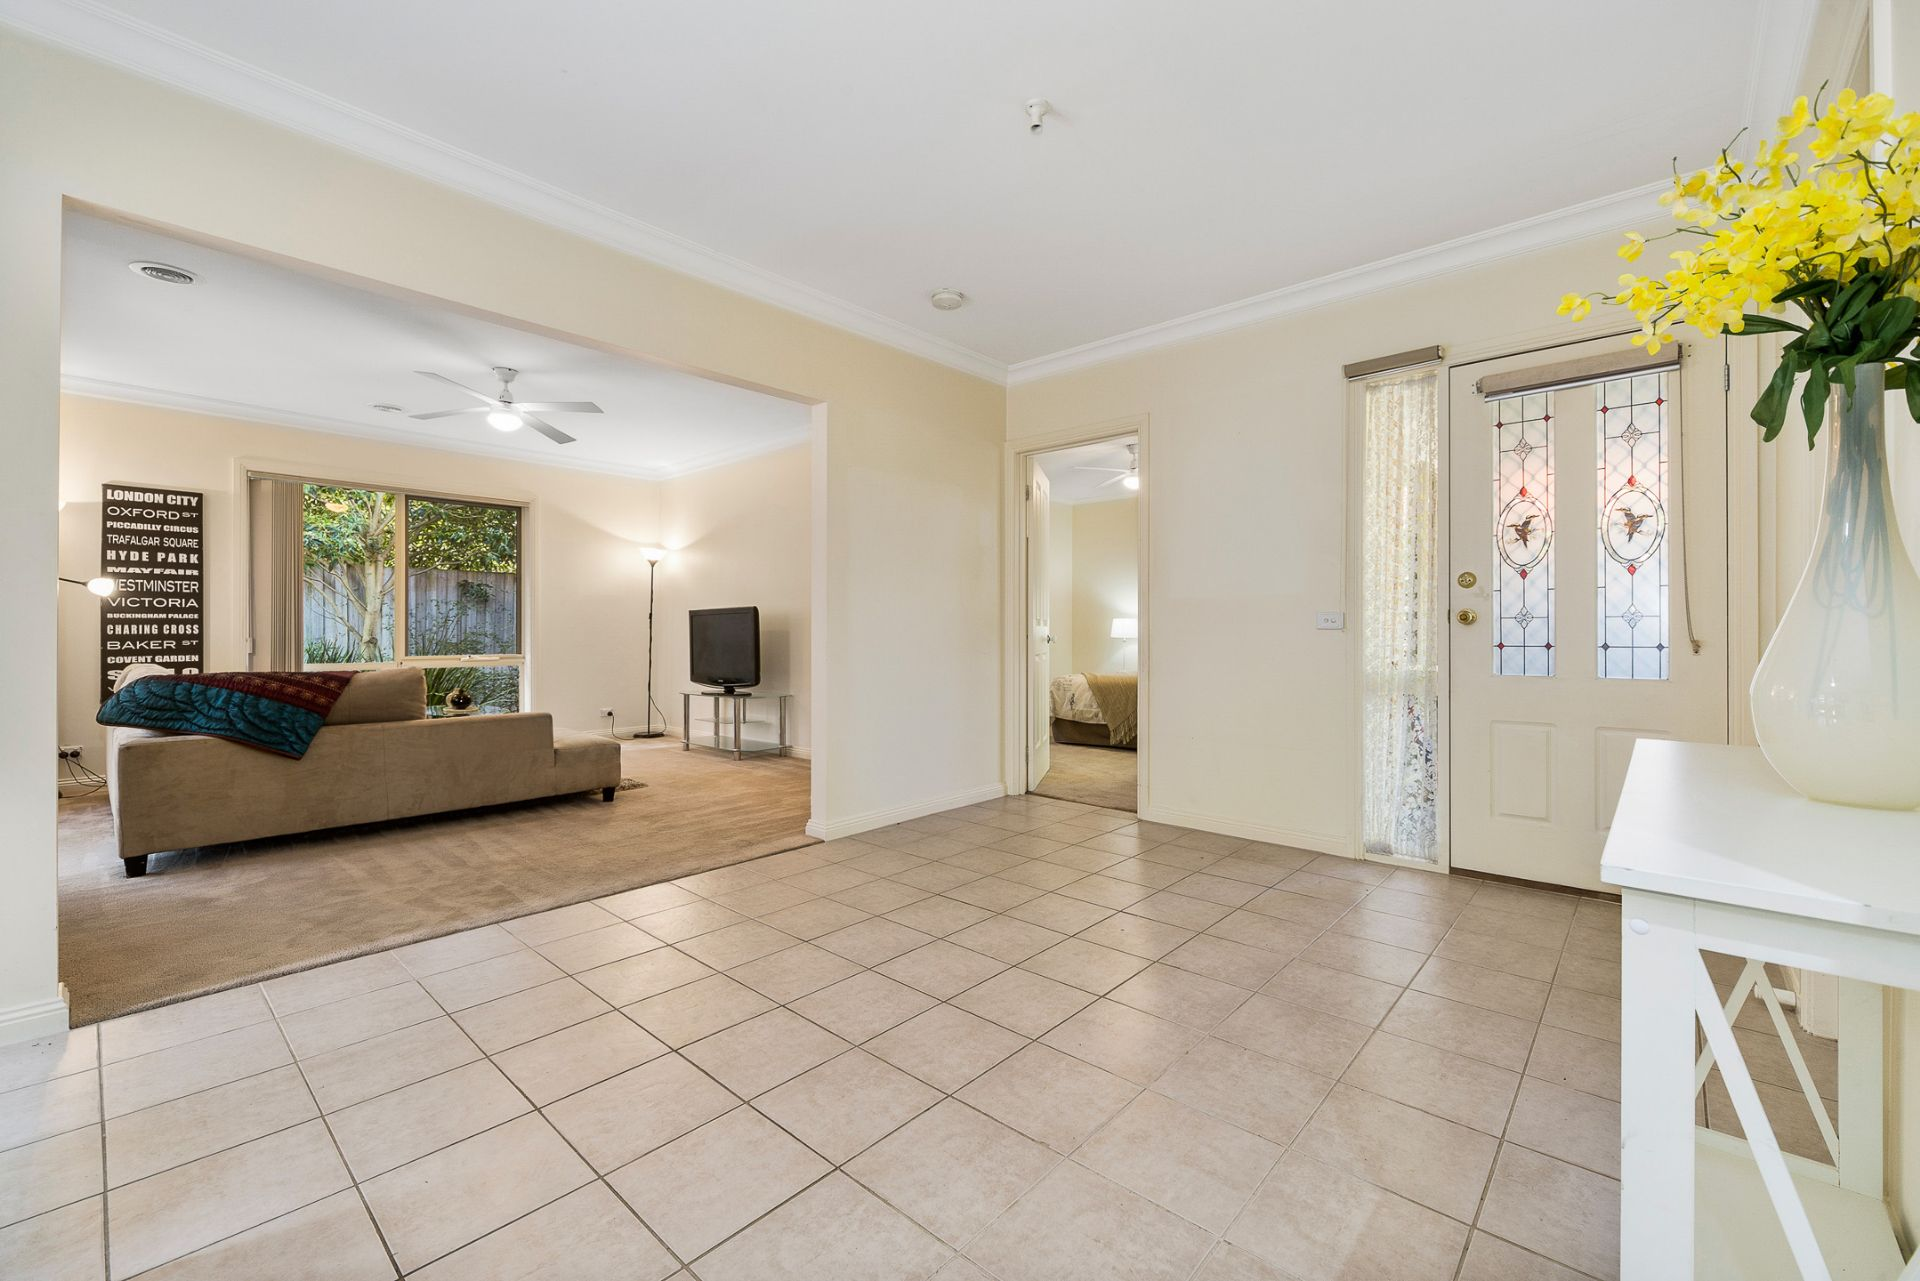 3/2420 Frankston flinders Road, BITTERN, VIC, 3918 - Image